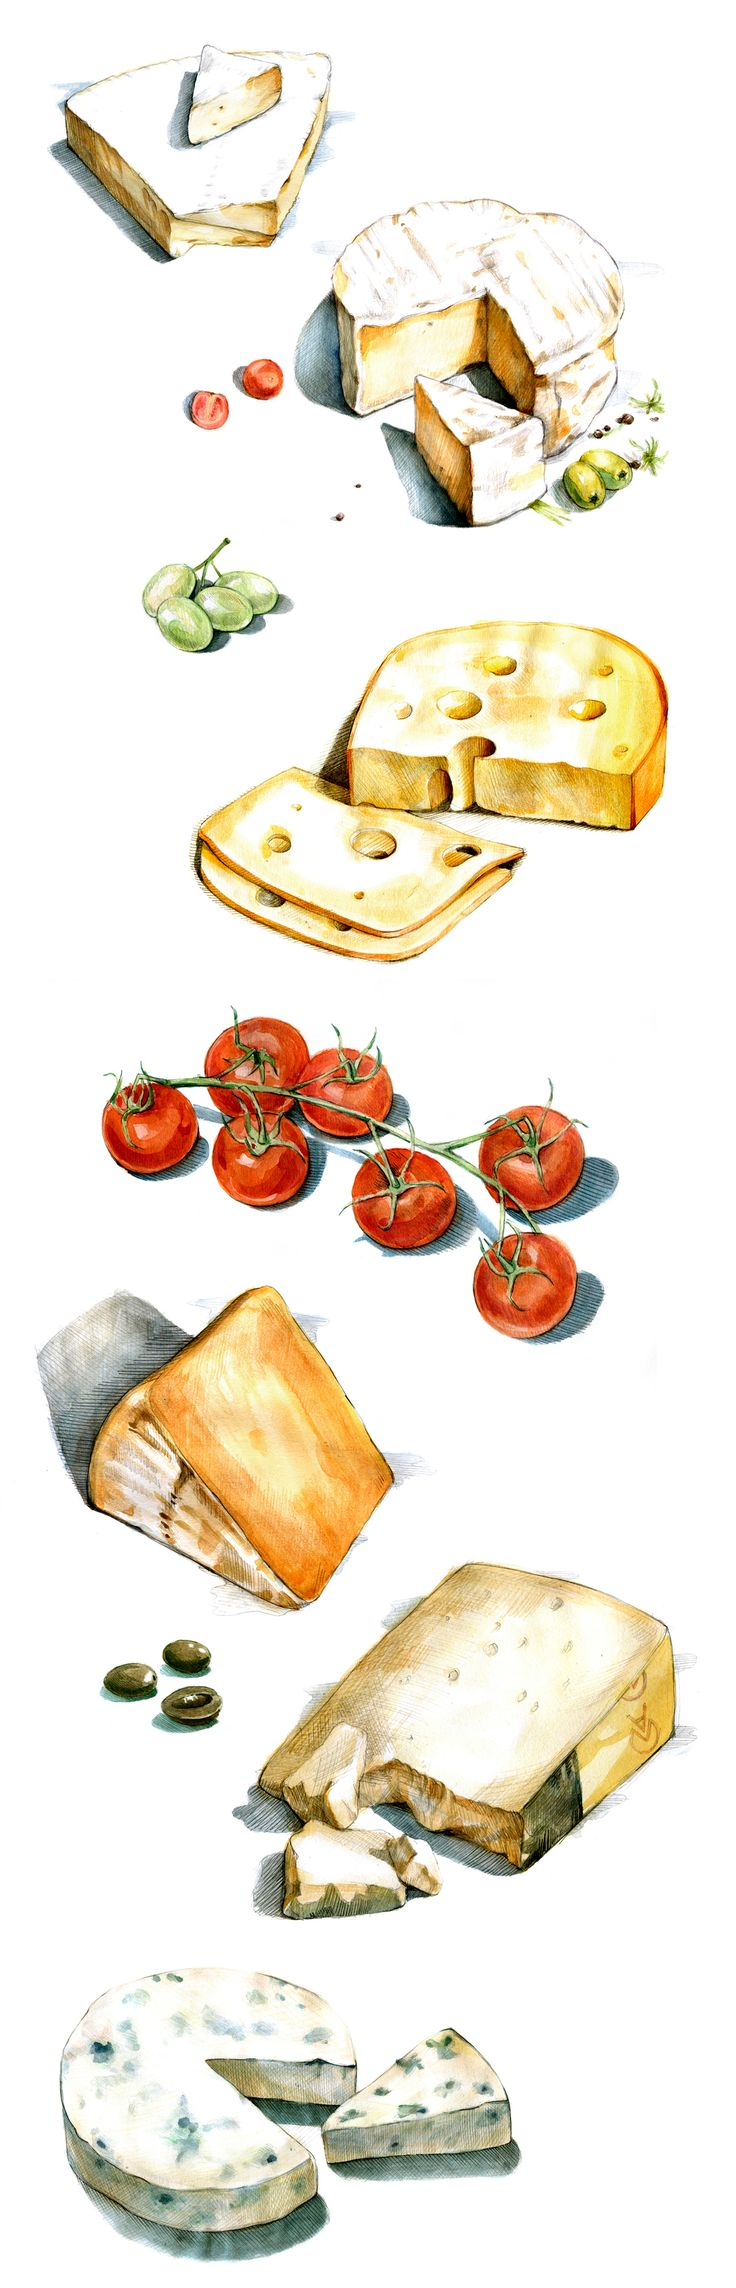 Catering clipart home cooked food. Best clip art